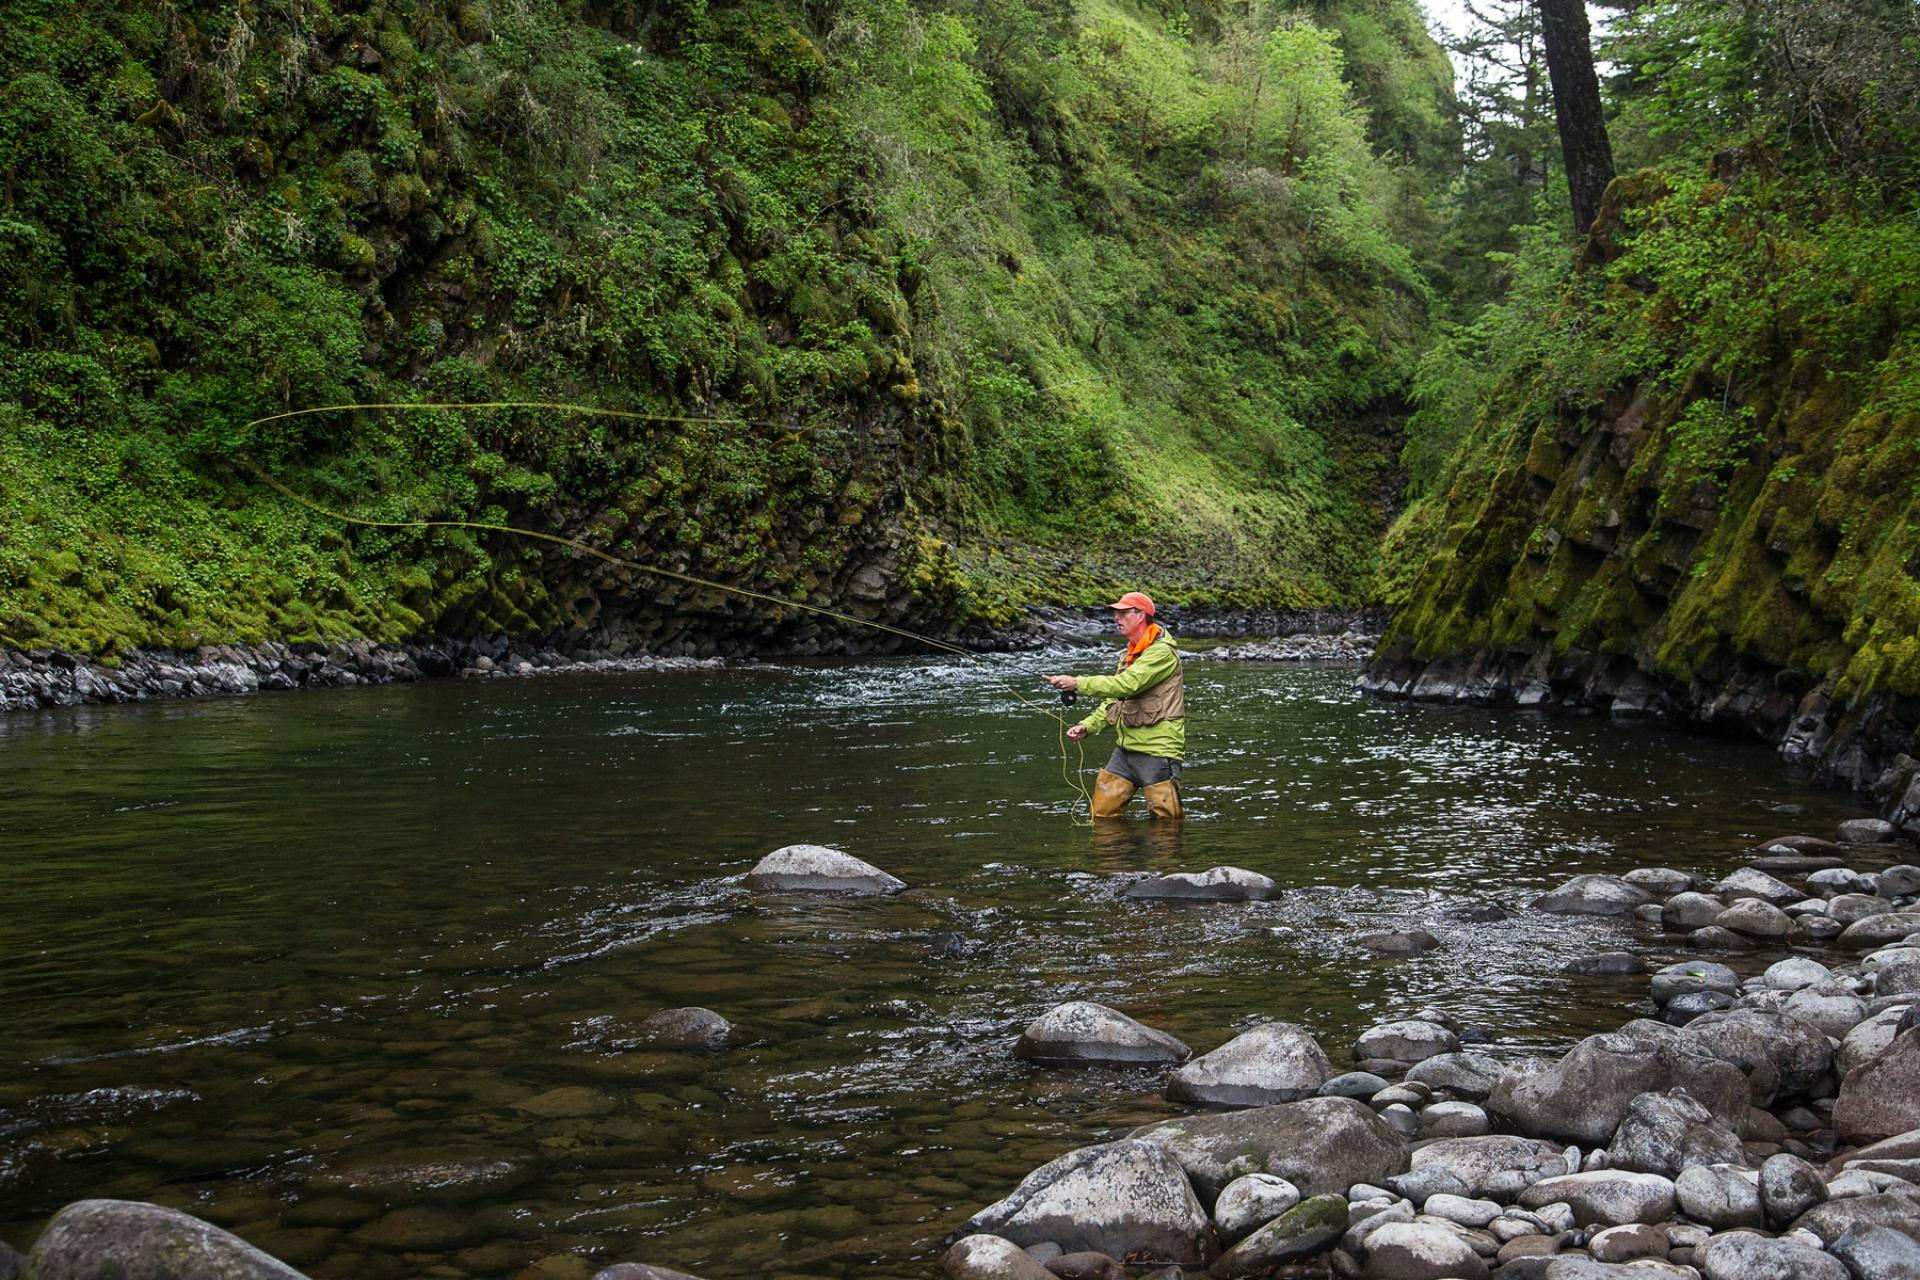 Man fishing surrounded by greenery in Molalla River Wild and Scenic River, Oregon